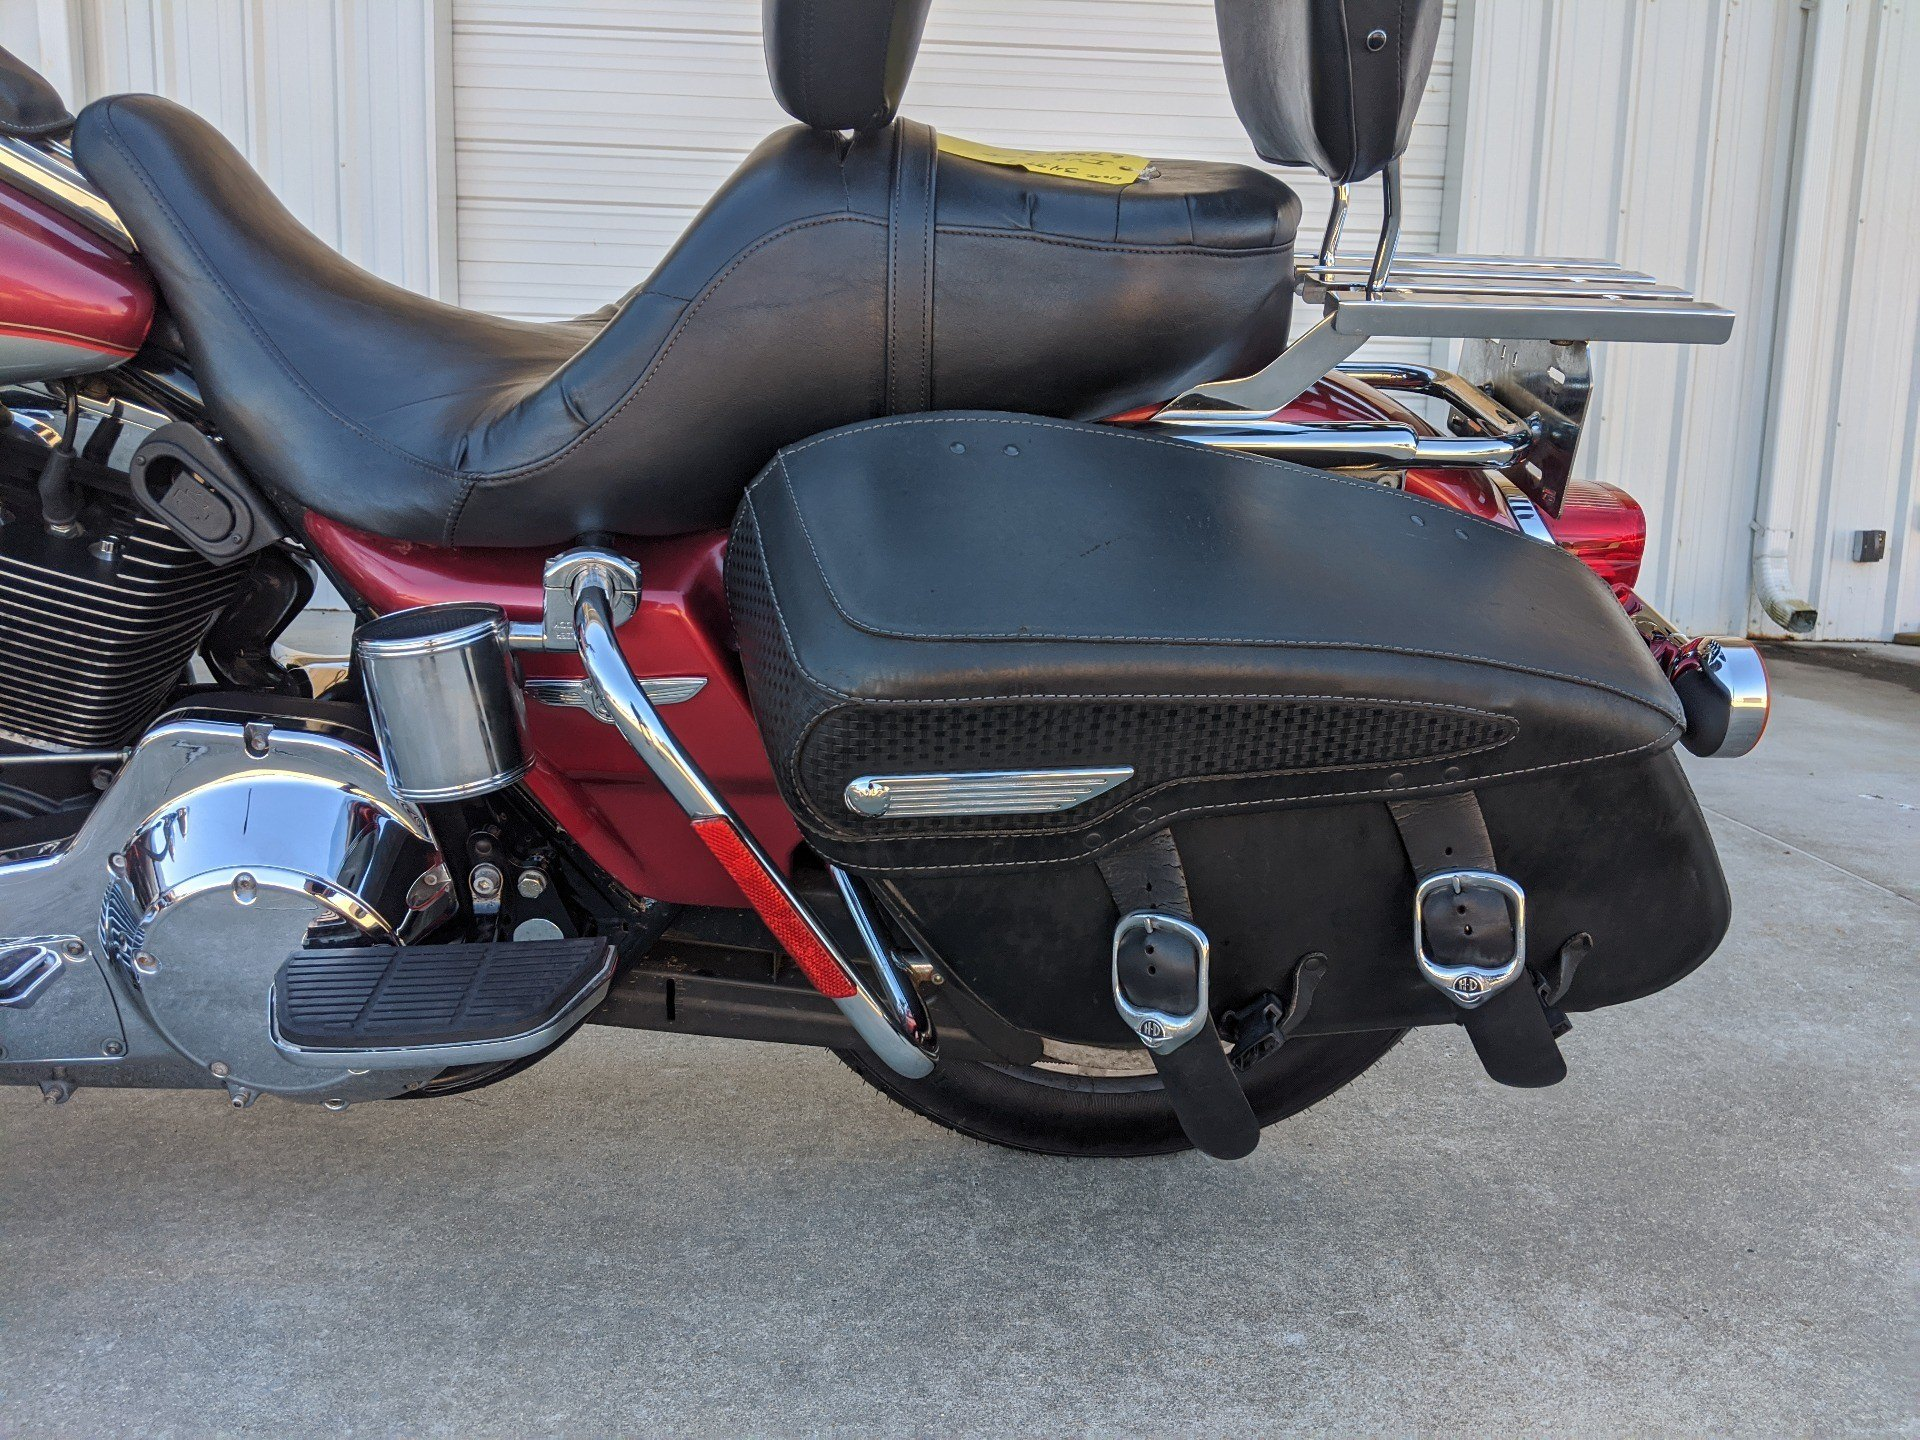 2005 Harley-Davidson FLHR/FLHRI Road King® in Monroe, Louisiana - Photo 5